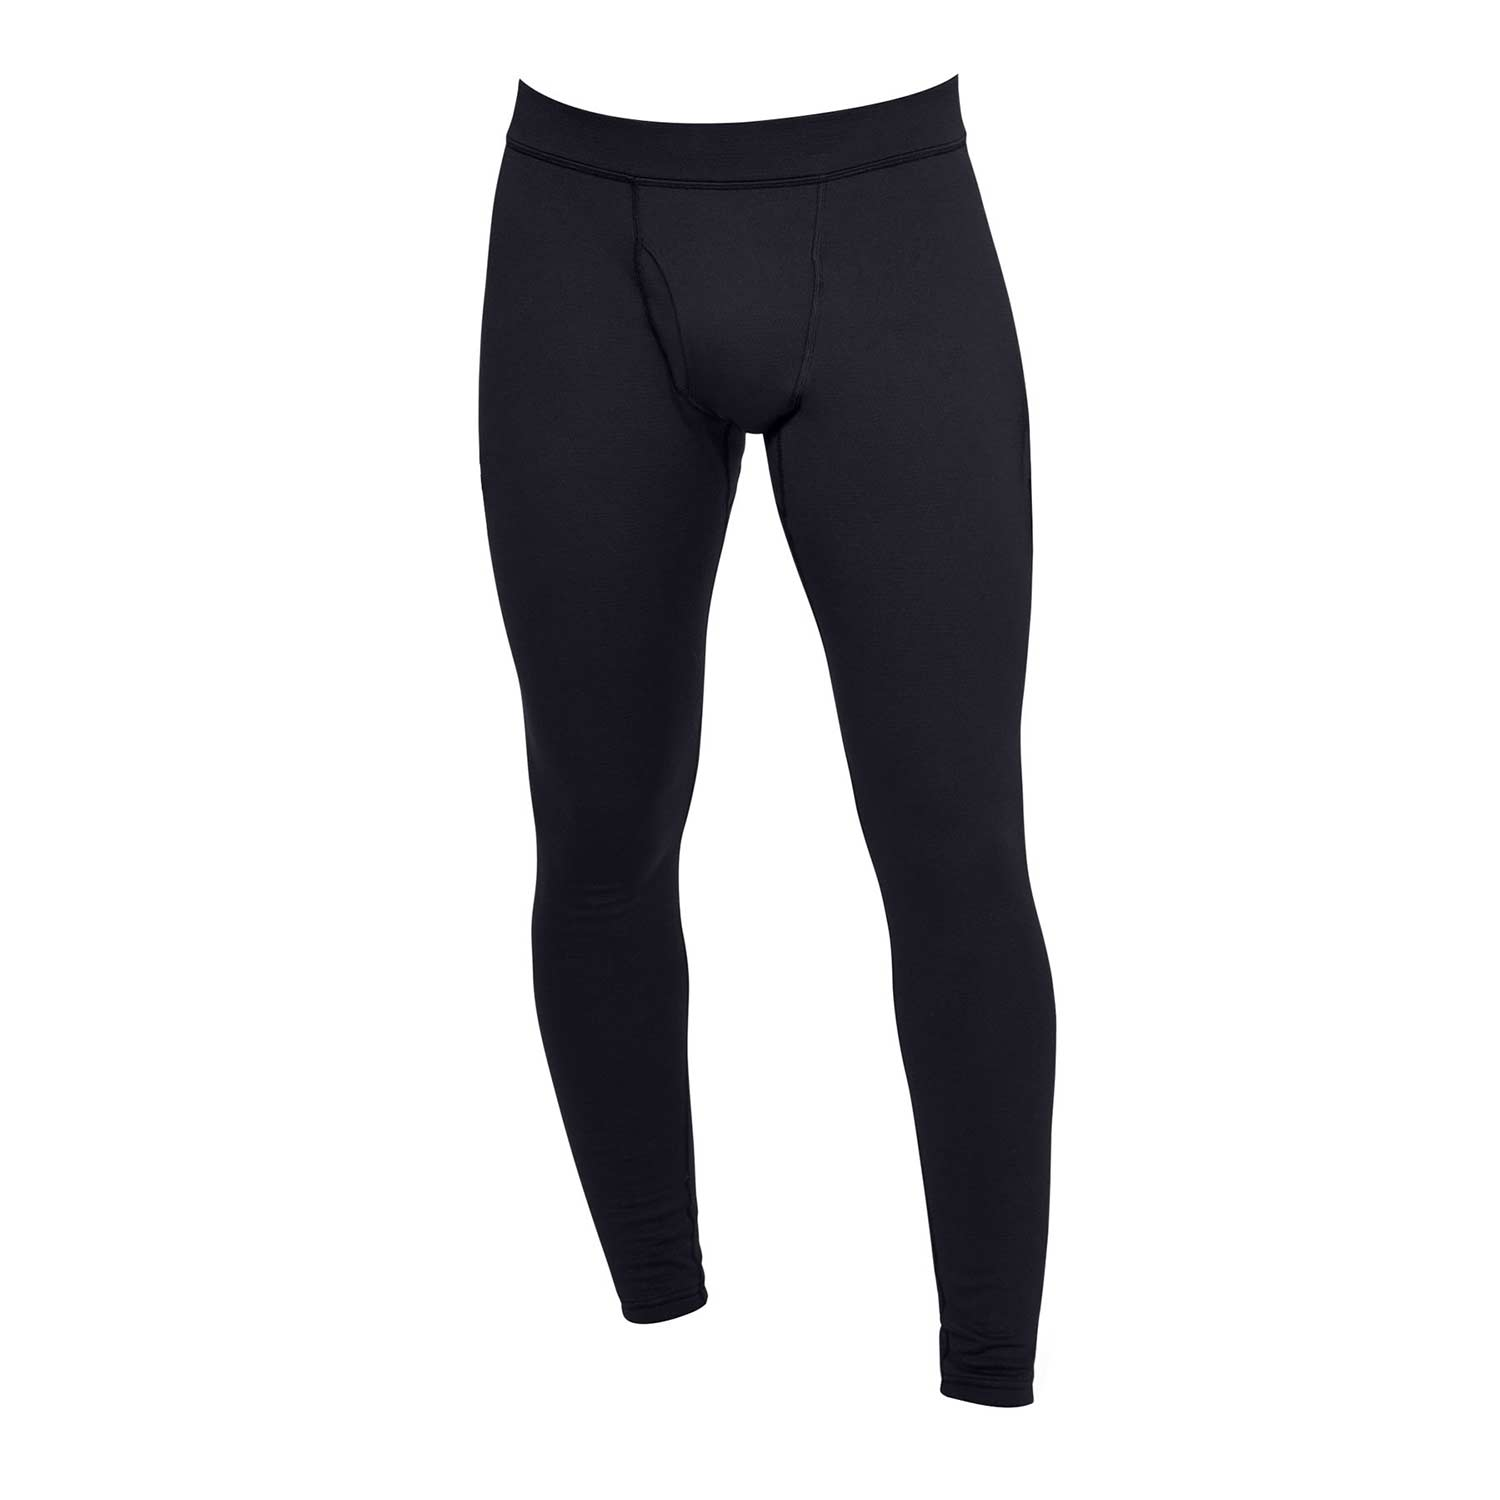 Under Armour ColdGear Base 4.0 Leggings